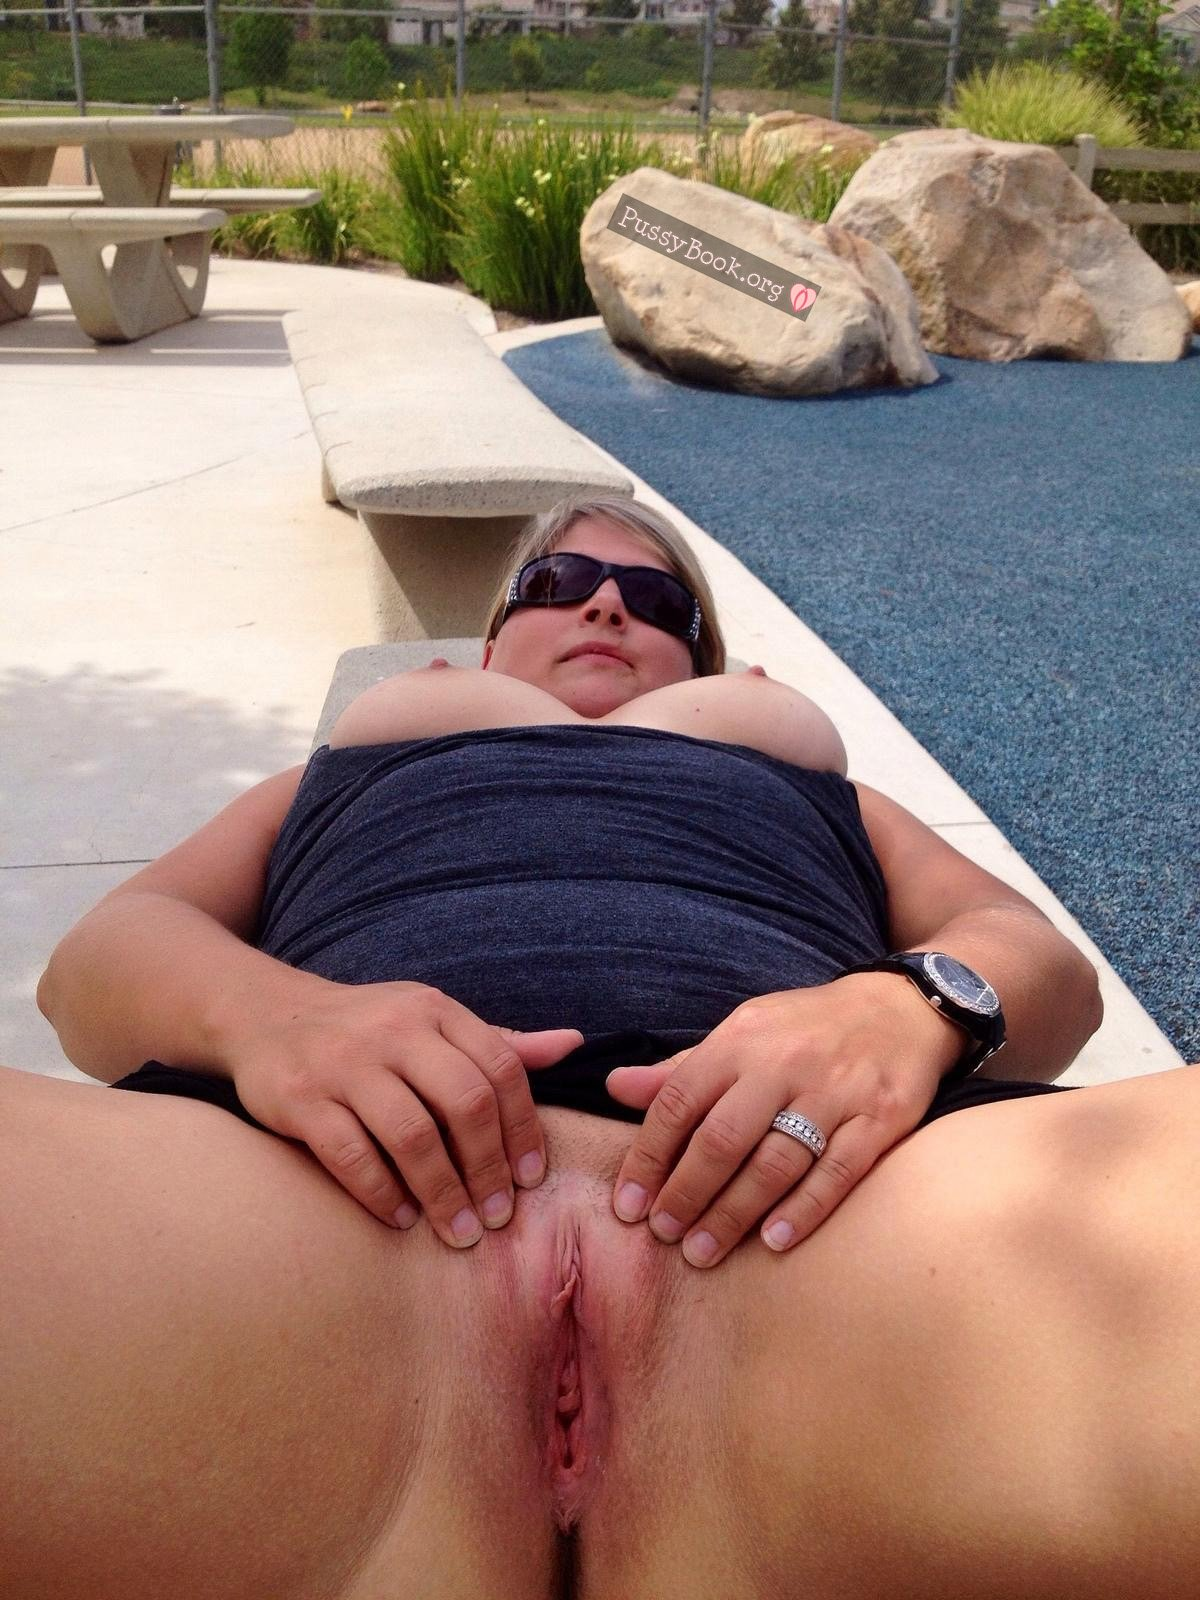 Chubby Blonde Busty Wife Opens Vagina Outdoors Nude Girls -2739